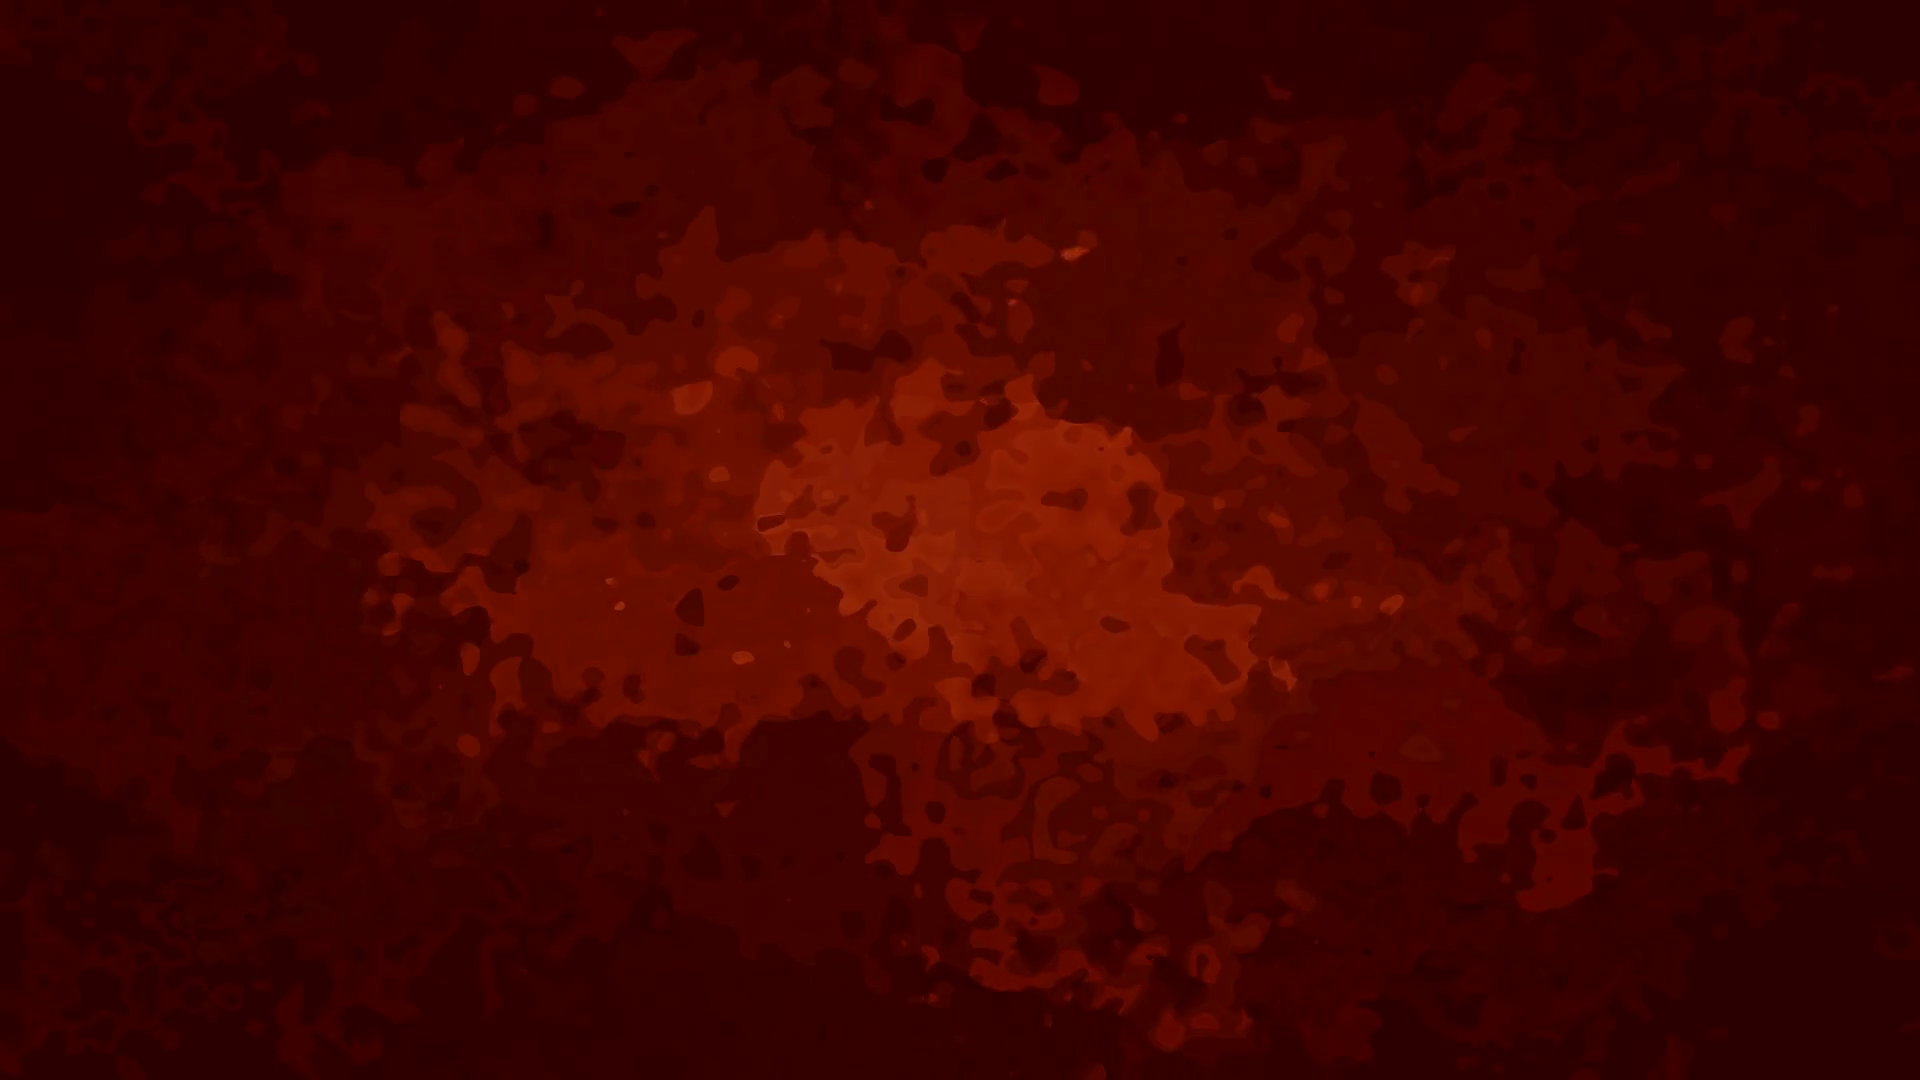 maroon background png free maroon background png transparent images 117219 pngio maroon background png transparent